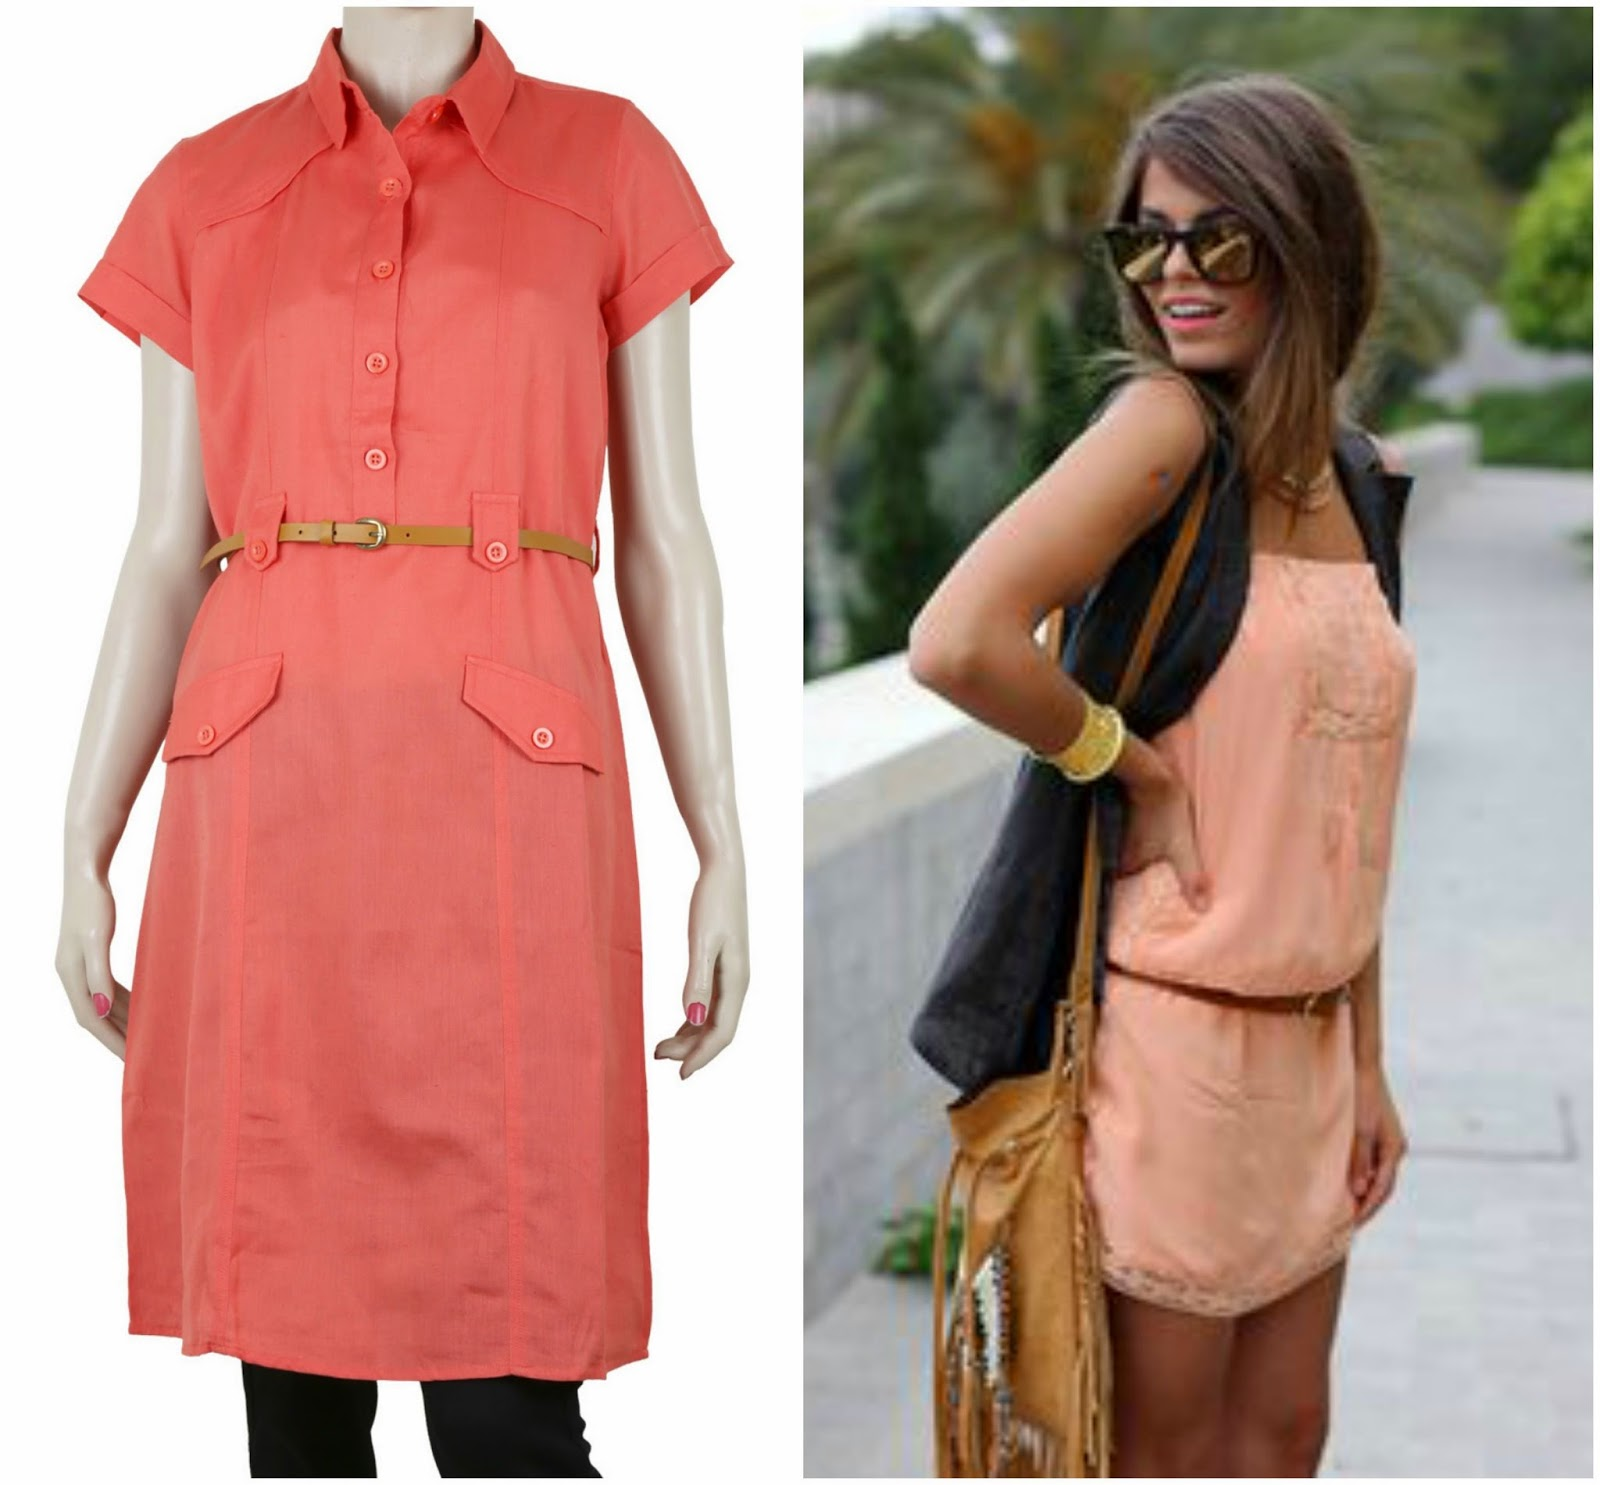 109F pink pastel shade dress, casual dress outfit in pink, pink fashion